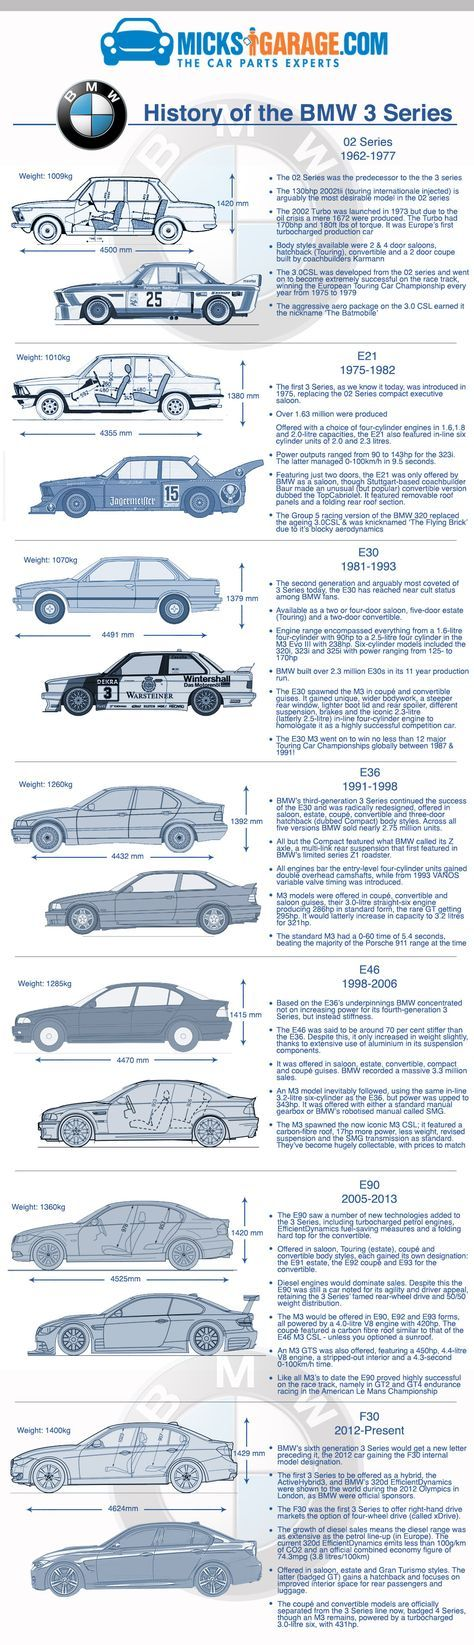 Hereu0027s Our Tribute To One Of The Most Popular Cars In The World   The  Ultimate Driving Machine   The BMW 3 Series! | Pinterest | BMW, Cars And E30